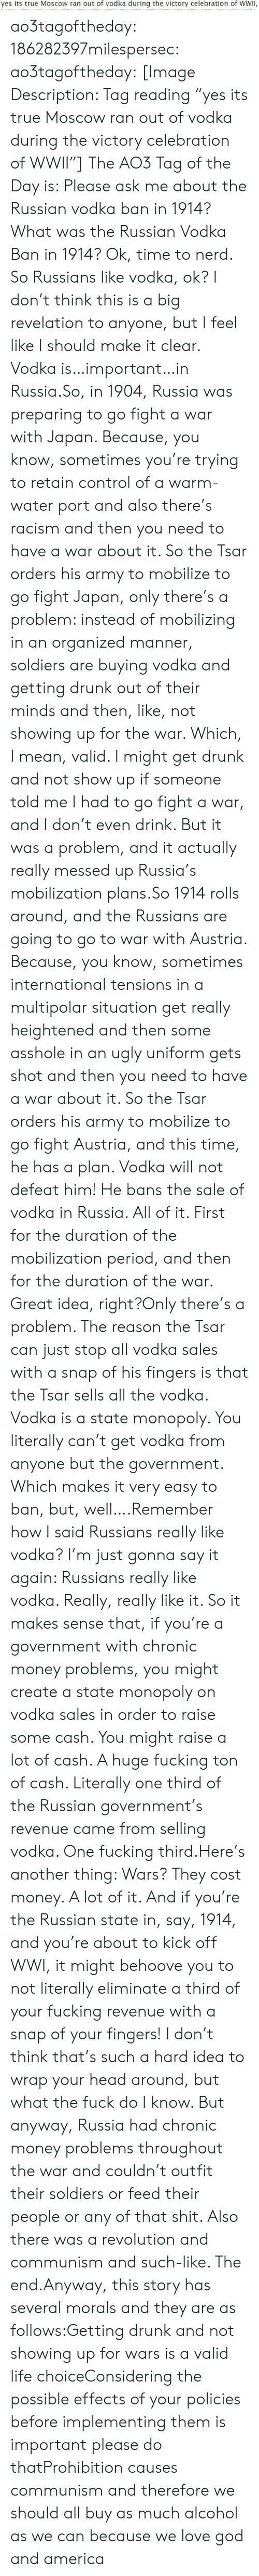 "ton: yes its true Moscow ran out of vodka during the victory celebration of WWII, ao3tagoftheday:  186282397milespersec:  ao3tagoftheday:  [Image Description: Tag reading ""yes its true Moscow ran out of vodka during the victory celebration of WWII""]  The AO3 Tag of the Day is: Please ask me about the Russian vodka ban in 1914?   What was the Russian Vodka Ban in 1914?  Ok, time to nerd. So Russians like vodka, ok? I don't think this is a big revelation to anyone, but I feel like I should make it clear. Vodka is…important…in Russia.So, in 1904, Russia was preparing to go fight a war with Japan. Because, you know, sometimes you're trying to retain control of a warm-water port and also there's racism and then you need to have a war about it. So the Tsar orders his army to mobilize to go fight Japan, only there's a problem: instead of mobilizing in an organized manner, soldiers are buying vodka and getting drunk out of their minds and then, like, not showing up for the war. Which, I mean, valid. I might get drunk and not show up if someone told me I had to go fight a war, and I don't even drink. But it was a problem, and it actually really messed up Russia's mobilization plans.So 1914 rolls around, and the Russians are going to go to war with Austria. Because, you know, sometimes international tensions in a multipolar situation get really heightened and then some asshole in an ugly uniform gets shot and then you need to have a war about it. So the Tsar orders his army to mobilize to go fight Austria, and this time, he has a plan. Vodka will not defeat him! He bans the sale of vodka in Russia. All of it. First for the duration of the mobilization period, and then for the duration of the war. Great idea, right?Only there's a problem. The reason the Tsar can just stop all vodka sales with a snap of his fingers is that the Tsar sells all the vodka. Vodka is a state monopoly. You literally can't get vodka from anyone but the government. Which makes it very easy to ban, but, well….Remember how I said Russians really like vodka? I'm just gonna say it again: Russians really like vodka. Really, really like it. So it makes sense that, if you're a government with chronic money problems, you might create a state monopoly on vodka sales in order to raise some cash. You might raise a lot of cash. A huge fucking ton of cash. Literally one third of the Russian government's revenue came from selling vodka. One fucking third.Here's another thing: Wars? They cost money. A lot of it. And if you're the Russian state in, say, 1914, and you're about to kick off WWI, it might behoove you to not literally eliminate a third of your fucking revenue with a snap of your fingers! I don't think that's such a hard idea to wrap your head around, but what the fuck do I know. But anyway, Russia had chronic money problems throughout the war and couldn't outfit their soldiers or feed their people or any of that shit. Also there was a revolution and communism and such-like. The end.Anyway, this story has several morals and they are as follows:Getting drunk and not showing up for wars is a valid life choiceConsidering the possible effects of your policies before implementing them is important please do thatProhibition causes communism and therefore we should all buy as much alcohol as we can because we love god and america"